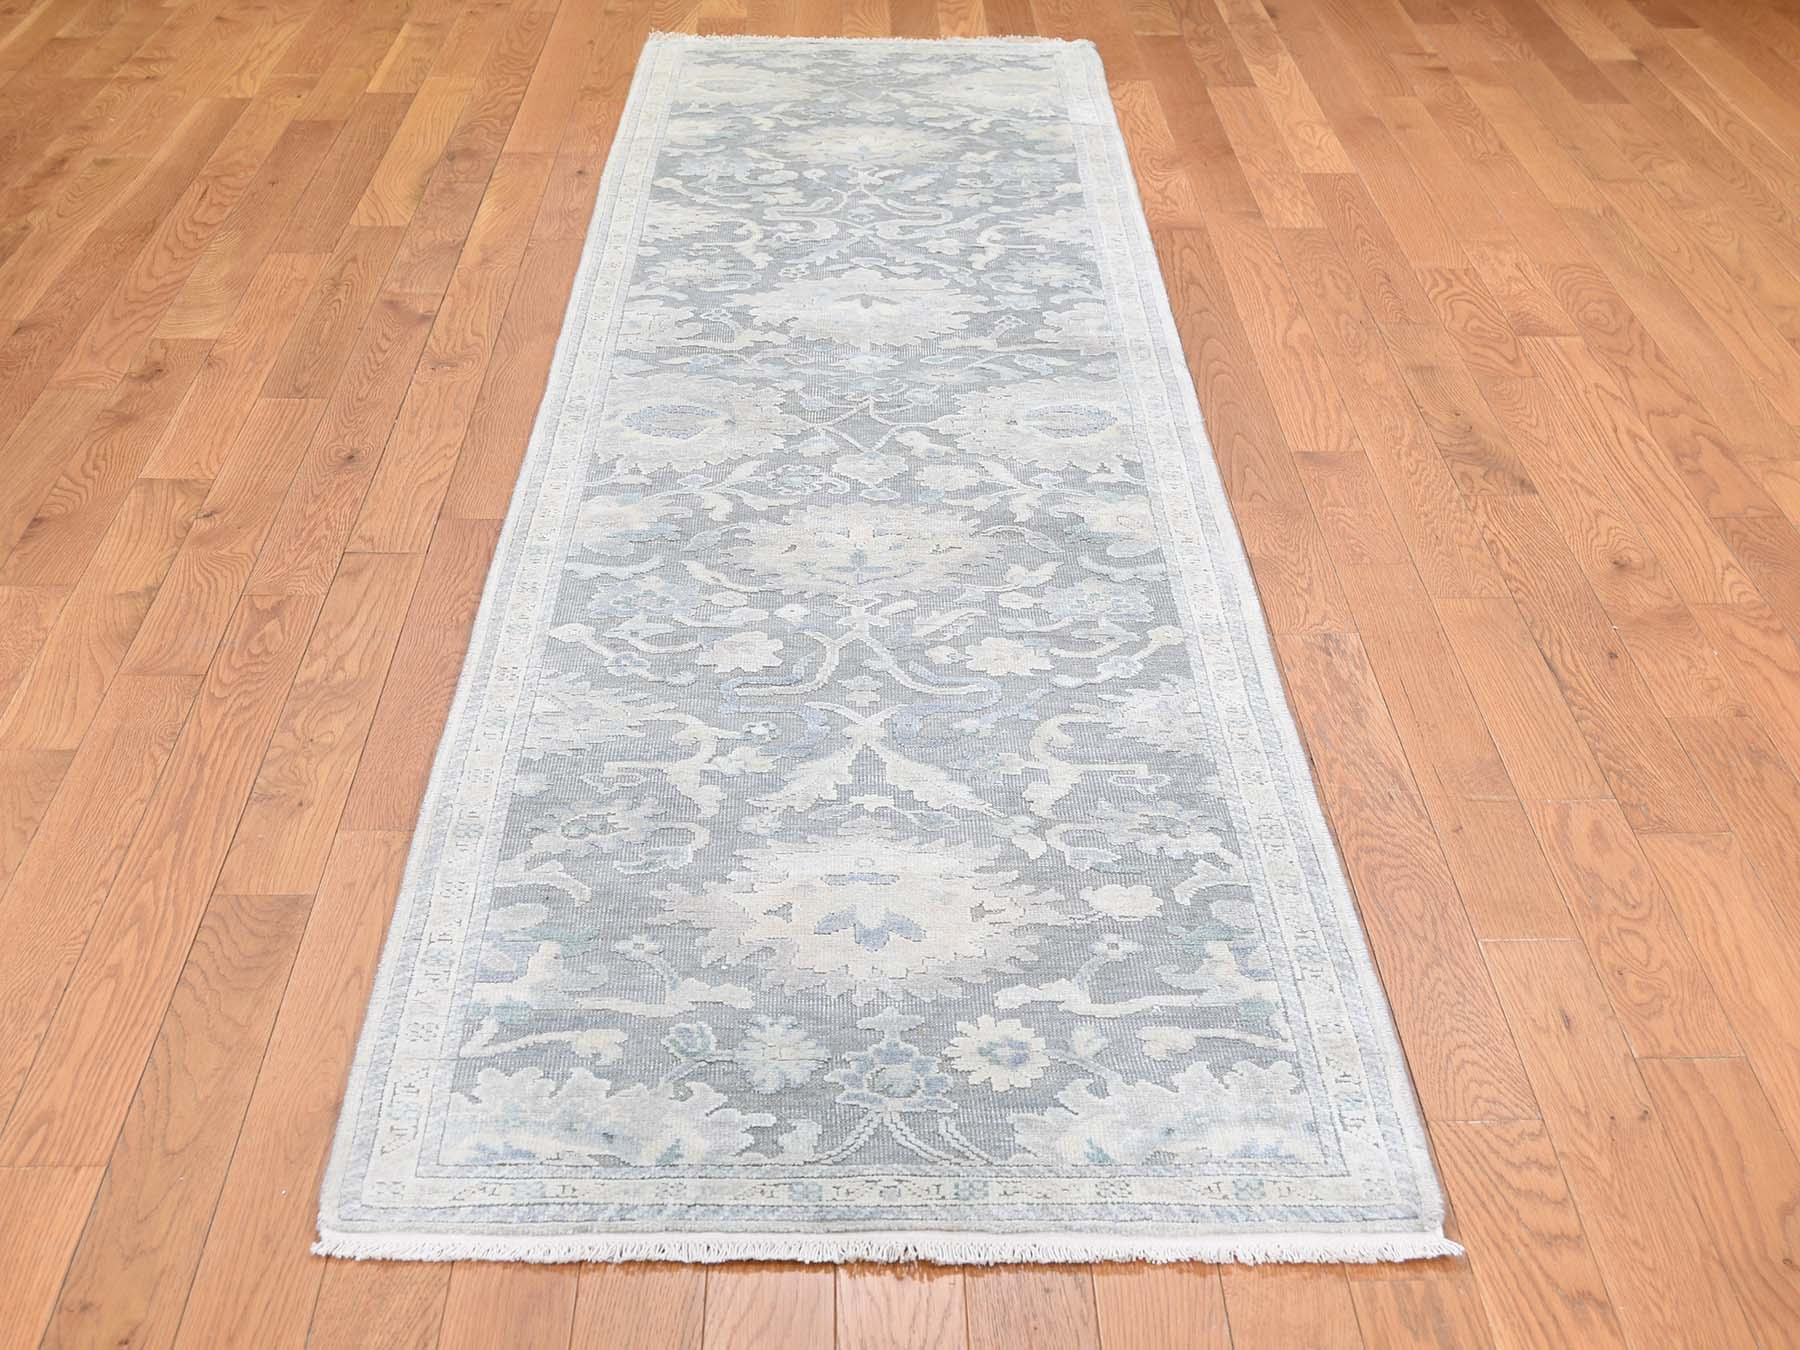 Transitional Silk Hand-Knotted Area Rug 2'6